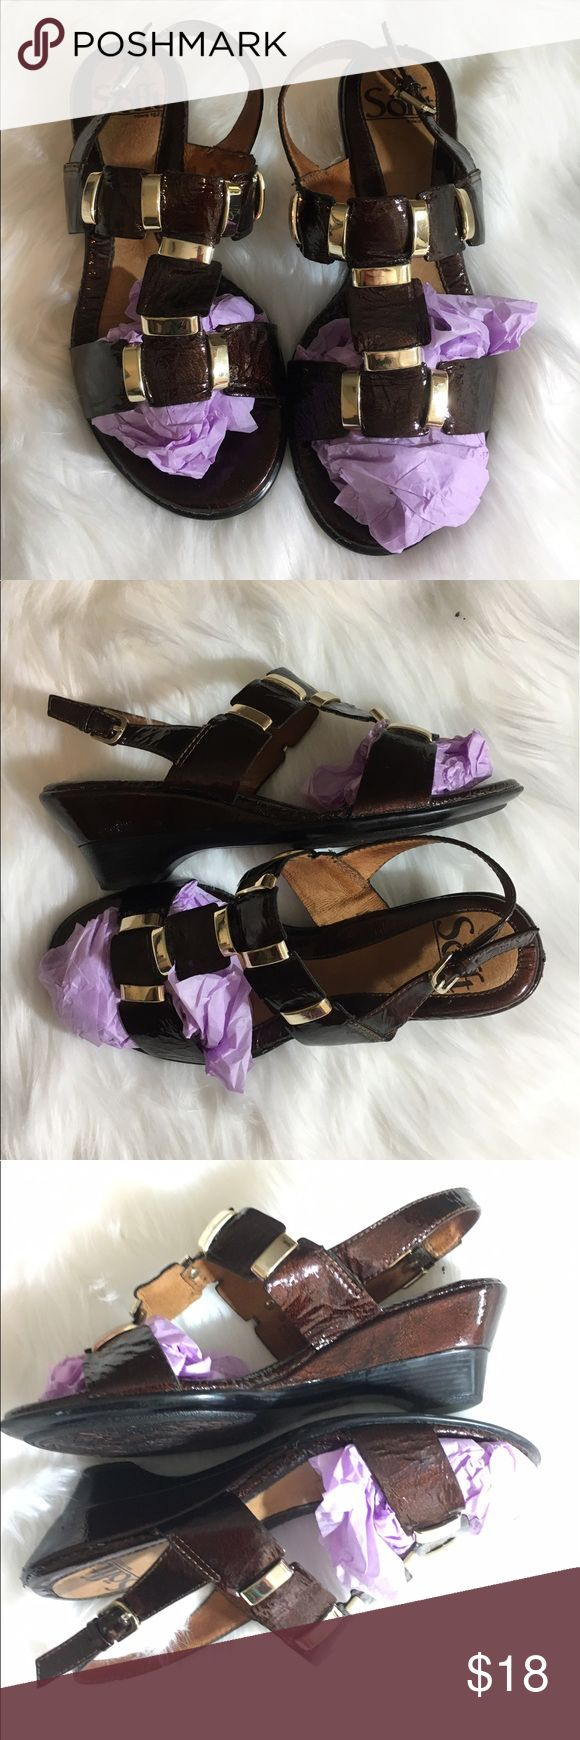 Sofft Sandals Brown Patent Leather Gold Square Sofft Sandals Brown Patent Leather Slip On Gold Square Women's Size 5 Medium •	Sz 5 Medium 	•	Strap Back 	•	Gold Details 	•	From back heal to front measure 9 Inches Sofft Shoes Sandals